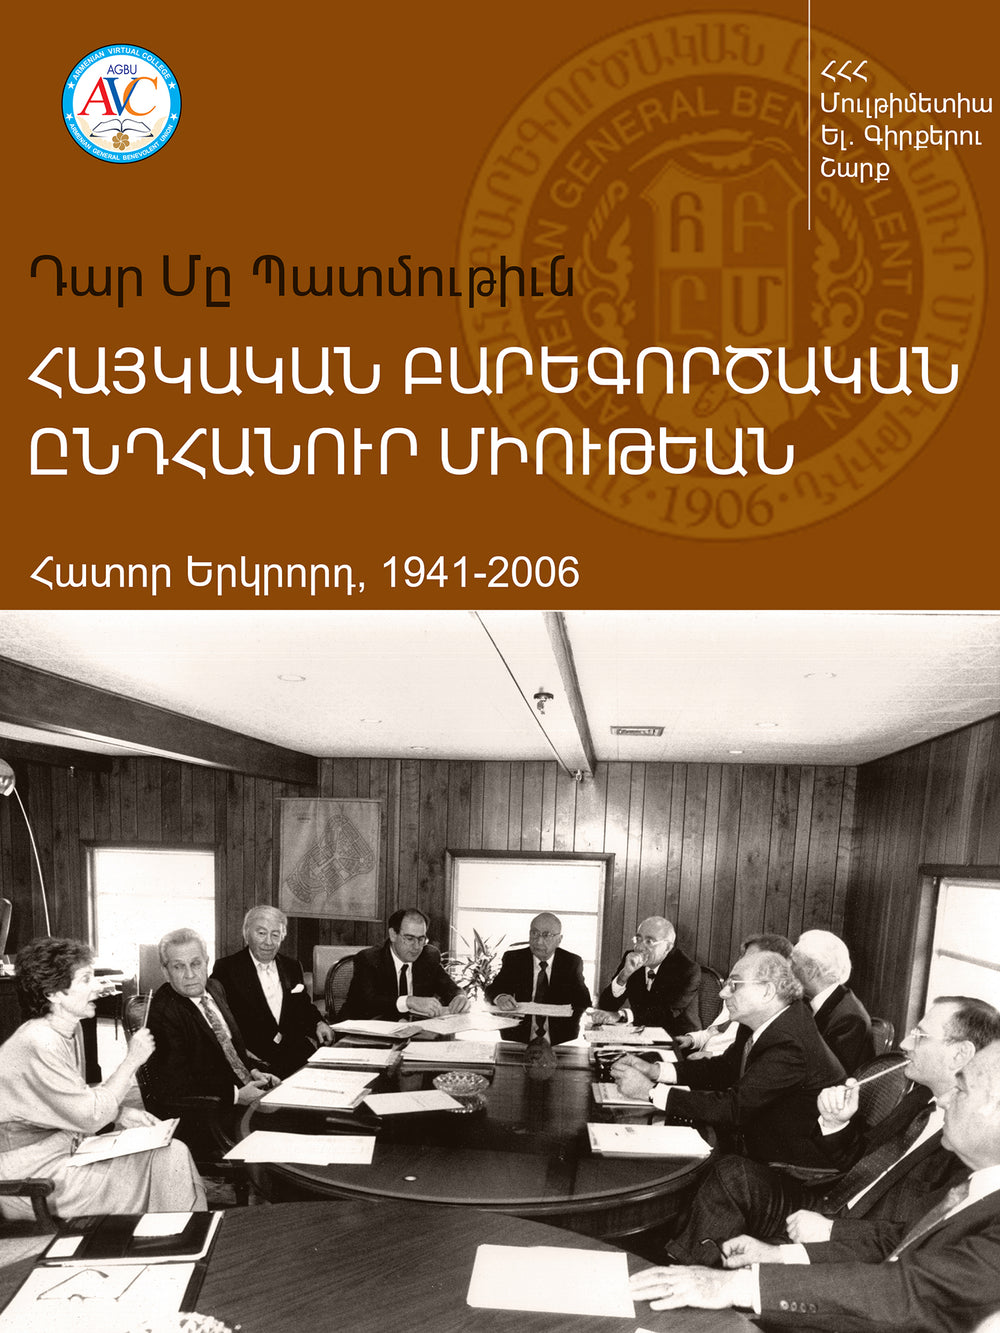 The Armenian General Benevolent Union: One Hundred Years of History (Vol. II: 1941-2006)